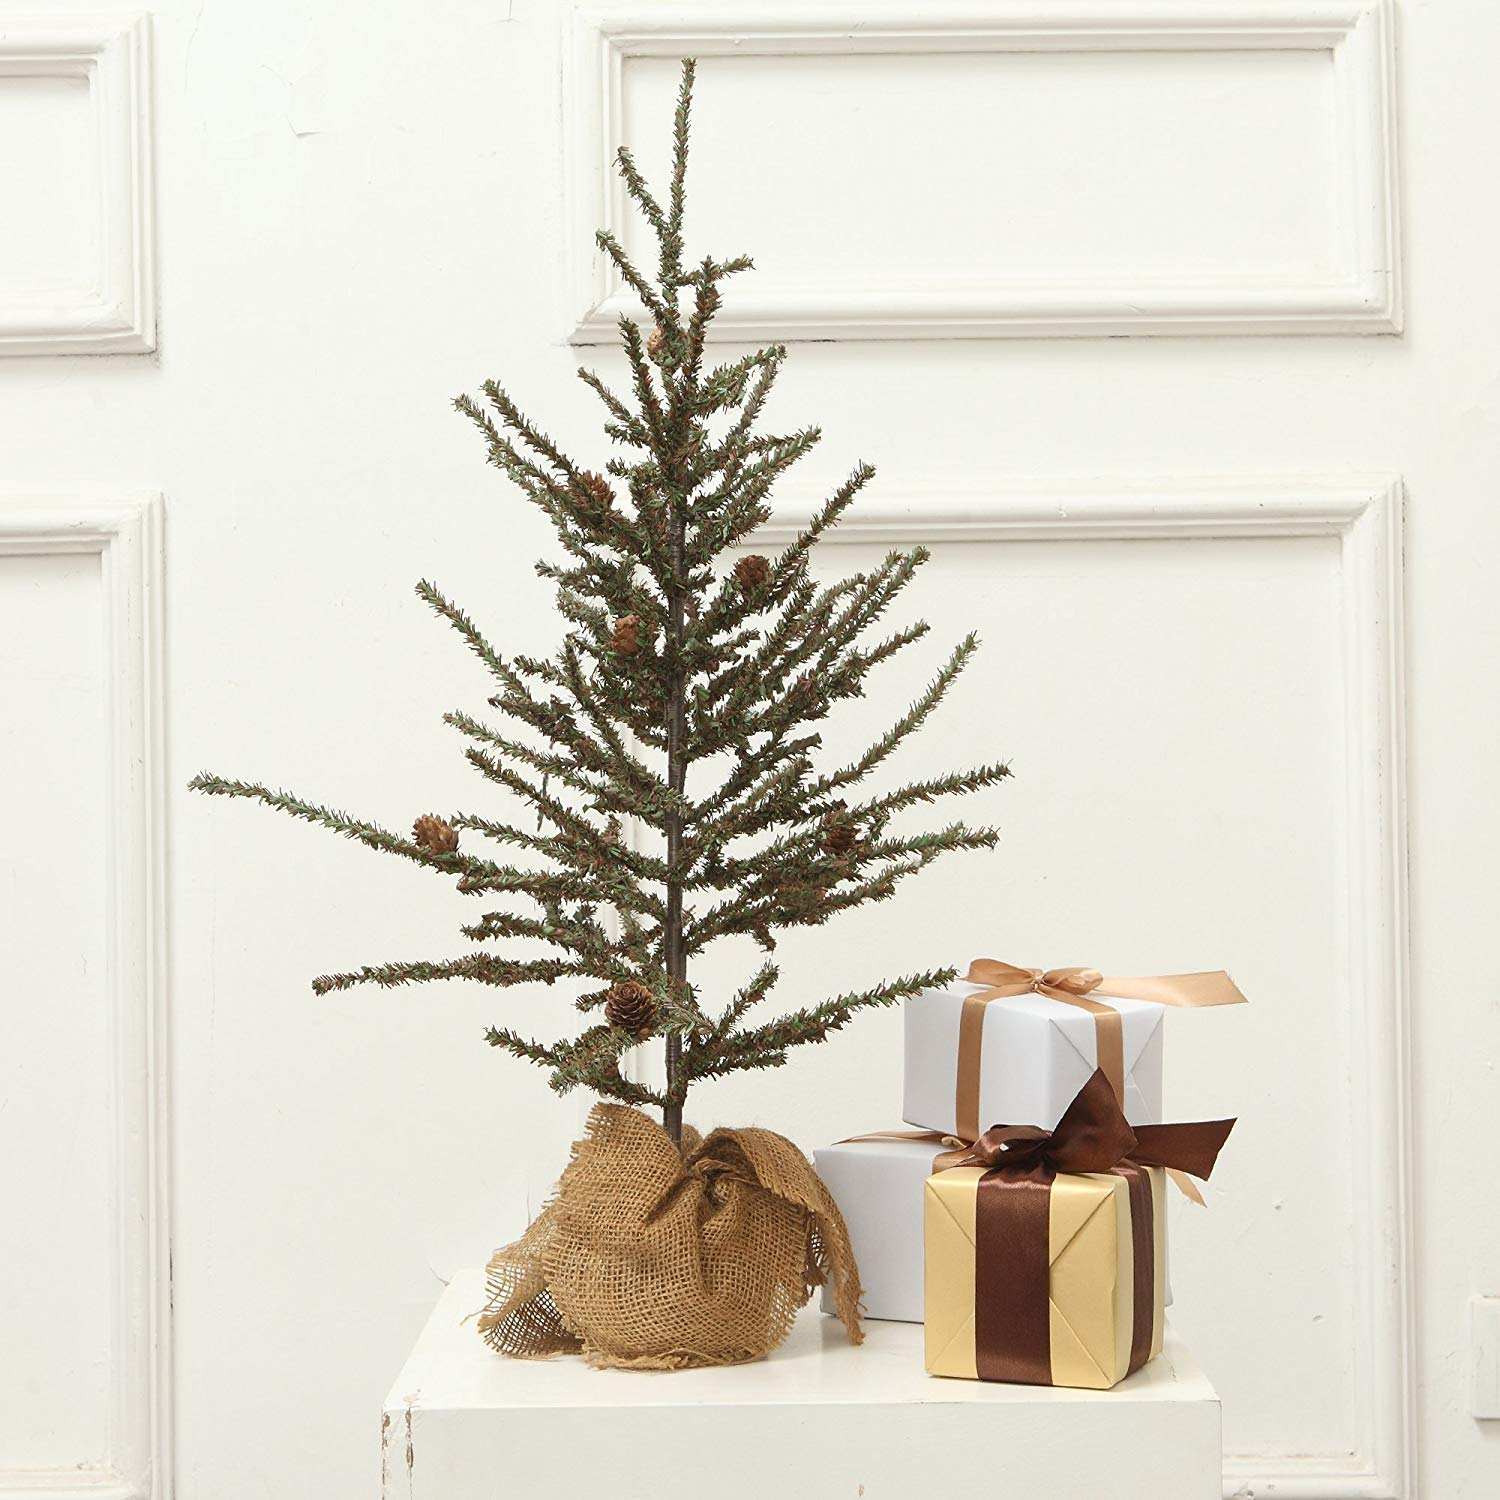 VGIA Small Home Decoration Tabletop 28'' Christmas Tree with Wood Stand, Green